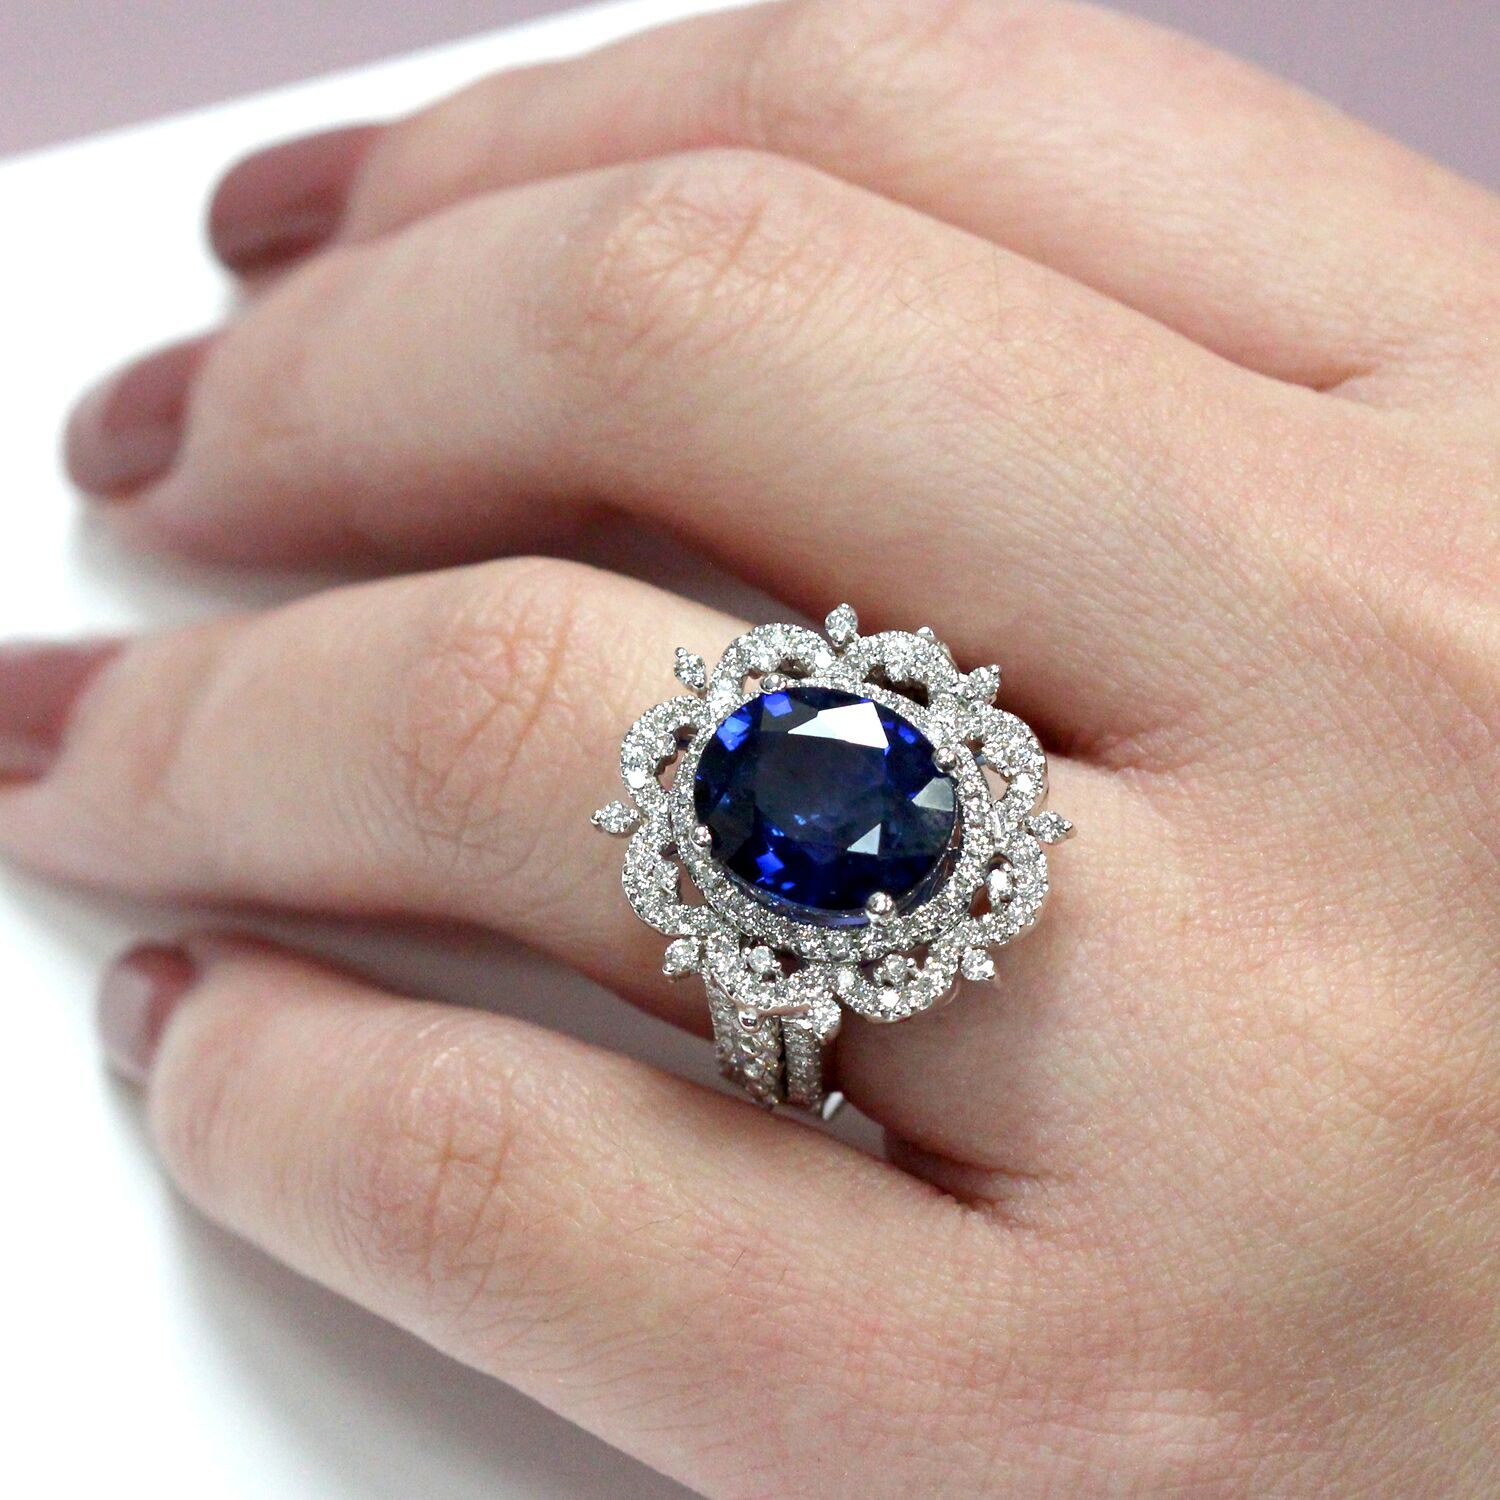 Top Gemstone Engagement Ring Trends of 2019